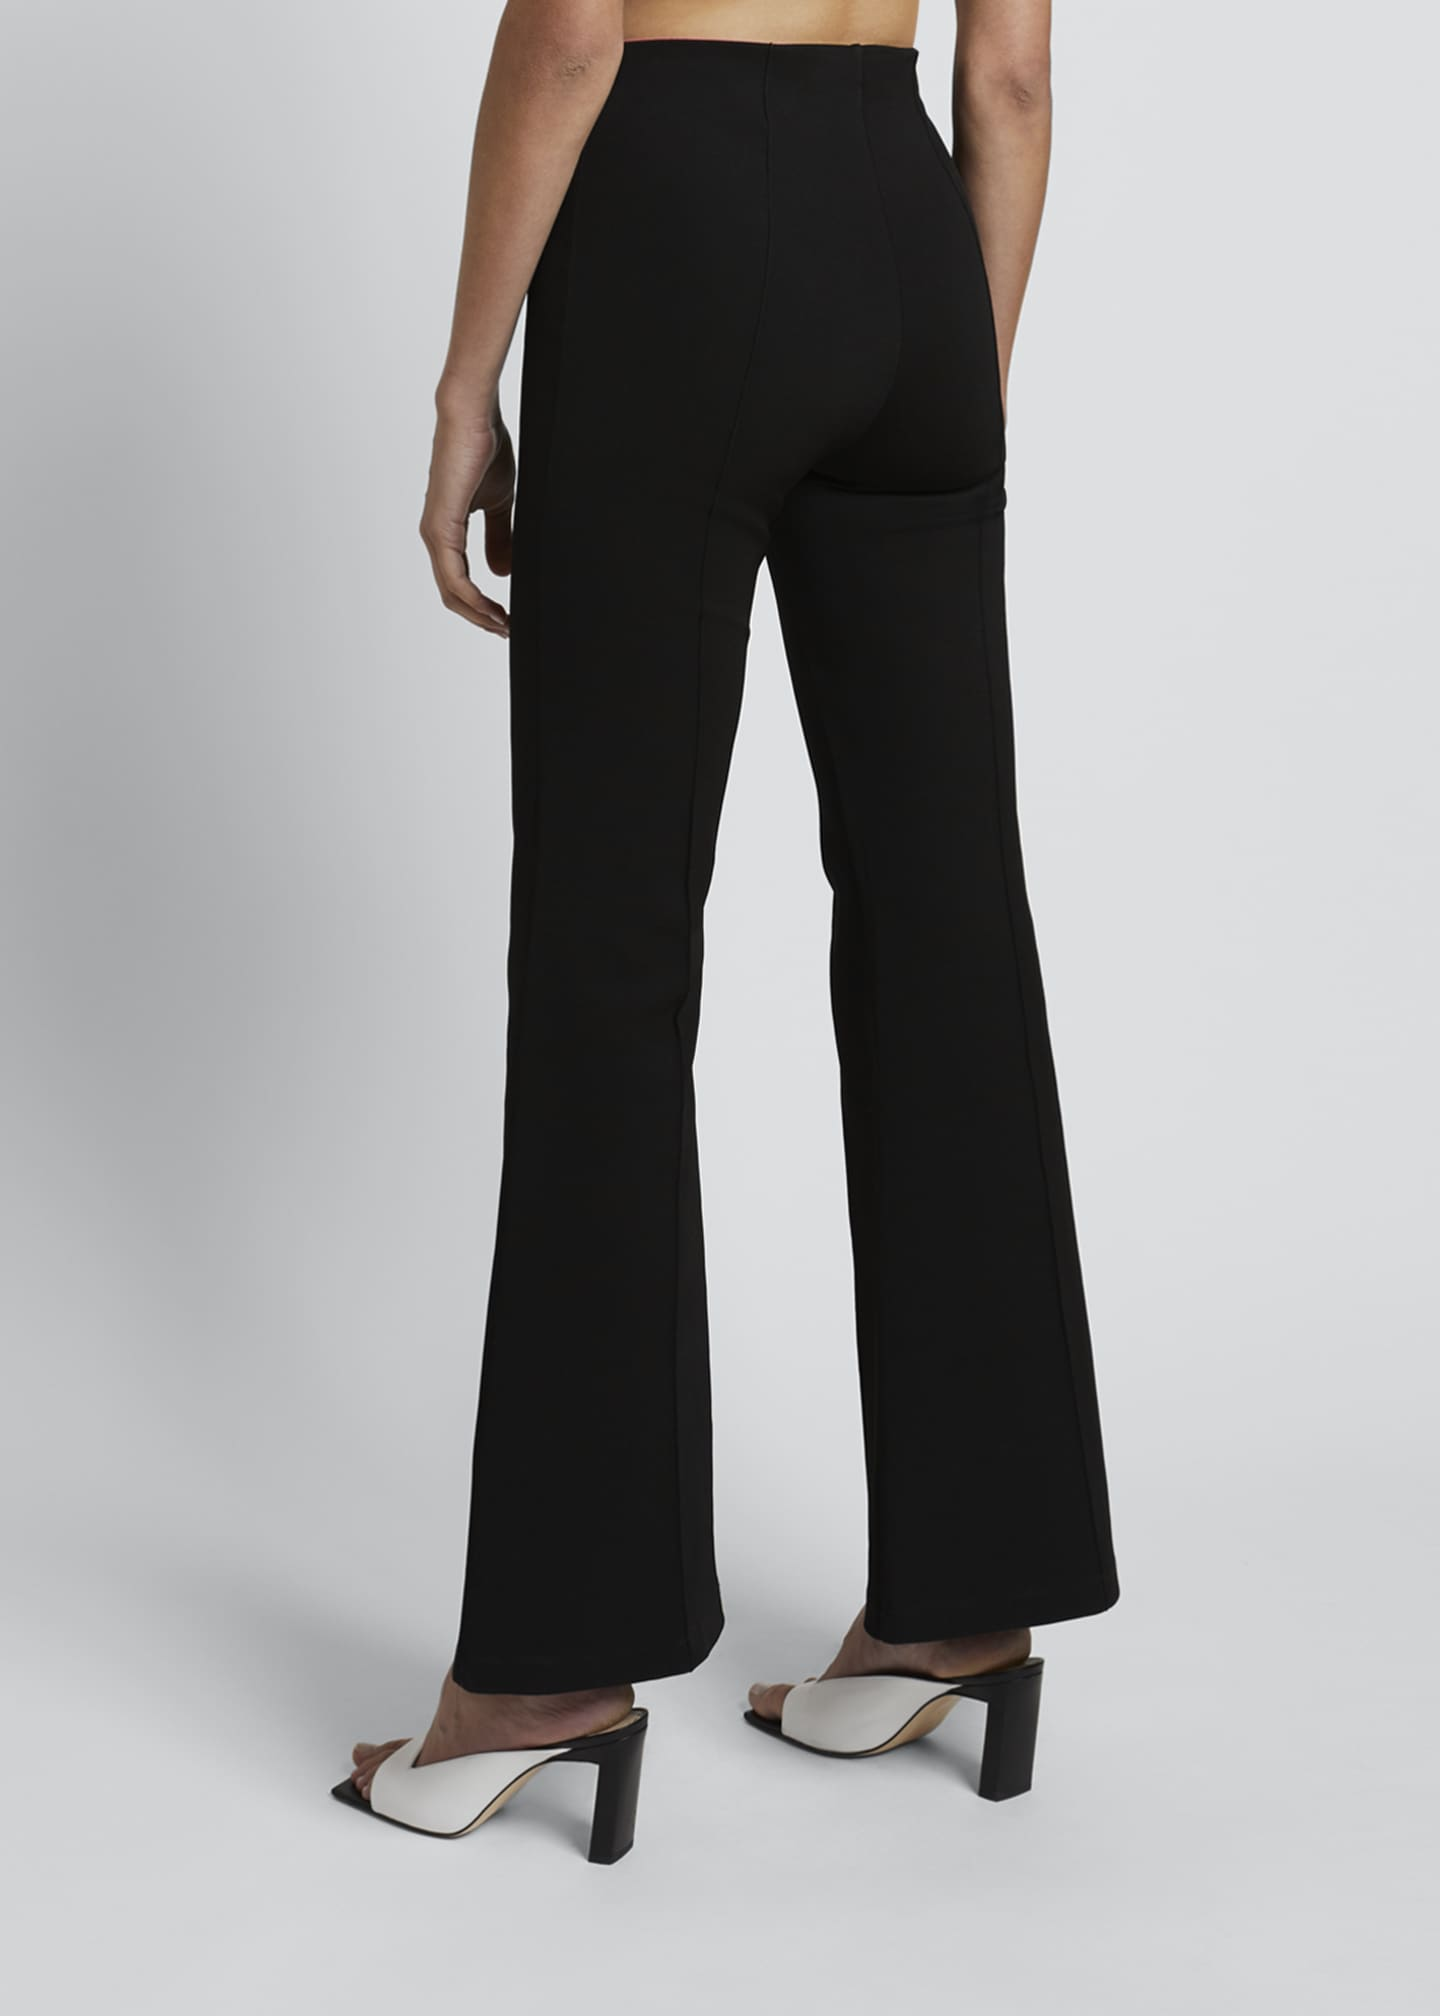 Image 2 of 3: Savanna High-Rise Flare Pants